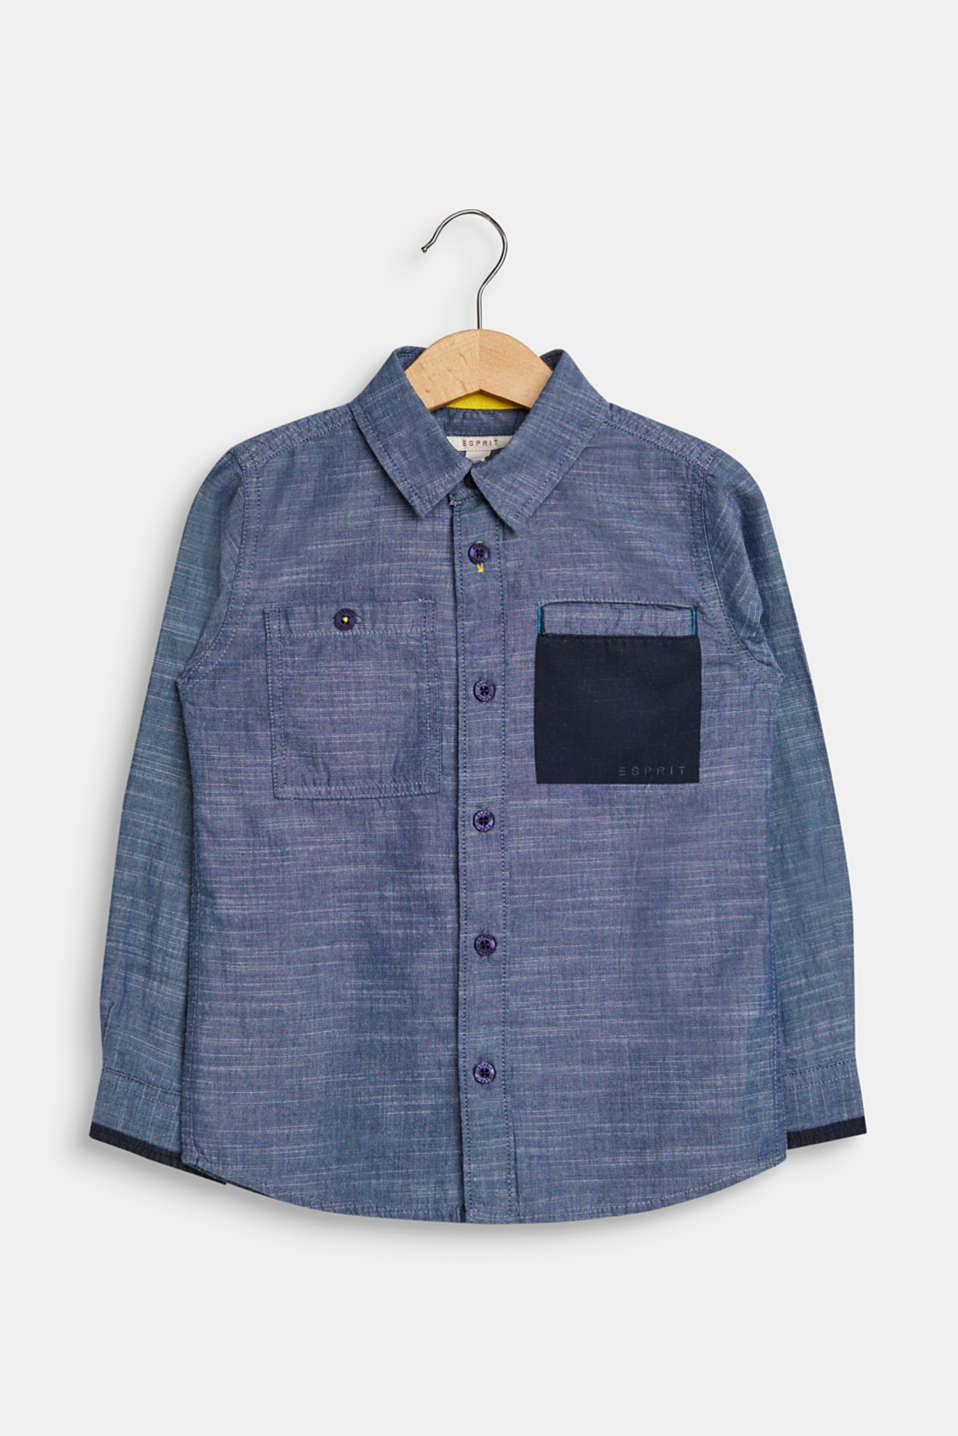 Esprit - Chambray shirt, 100% cotton